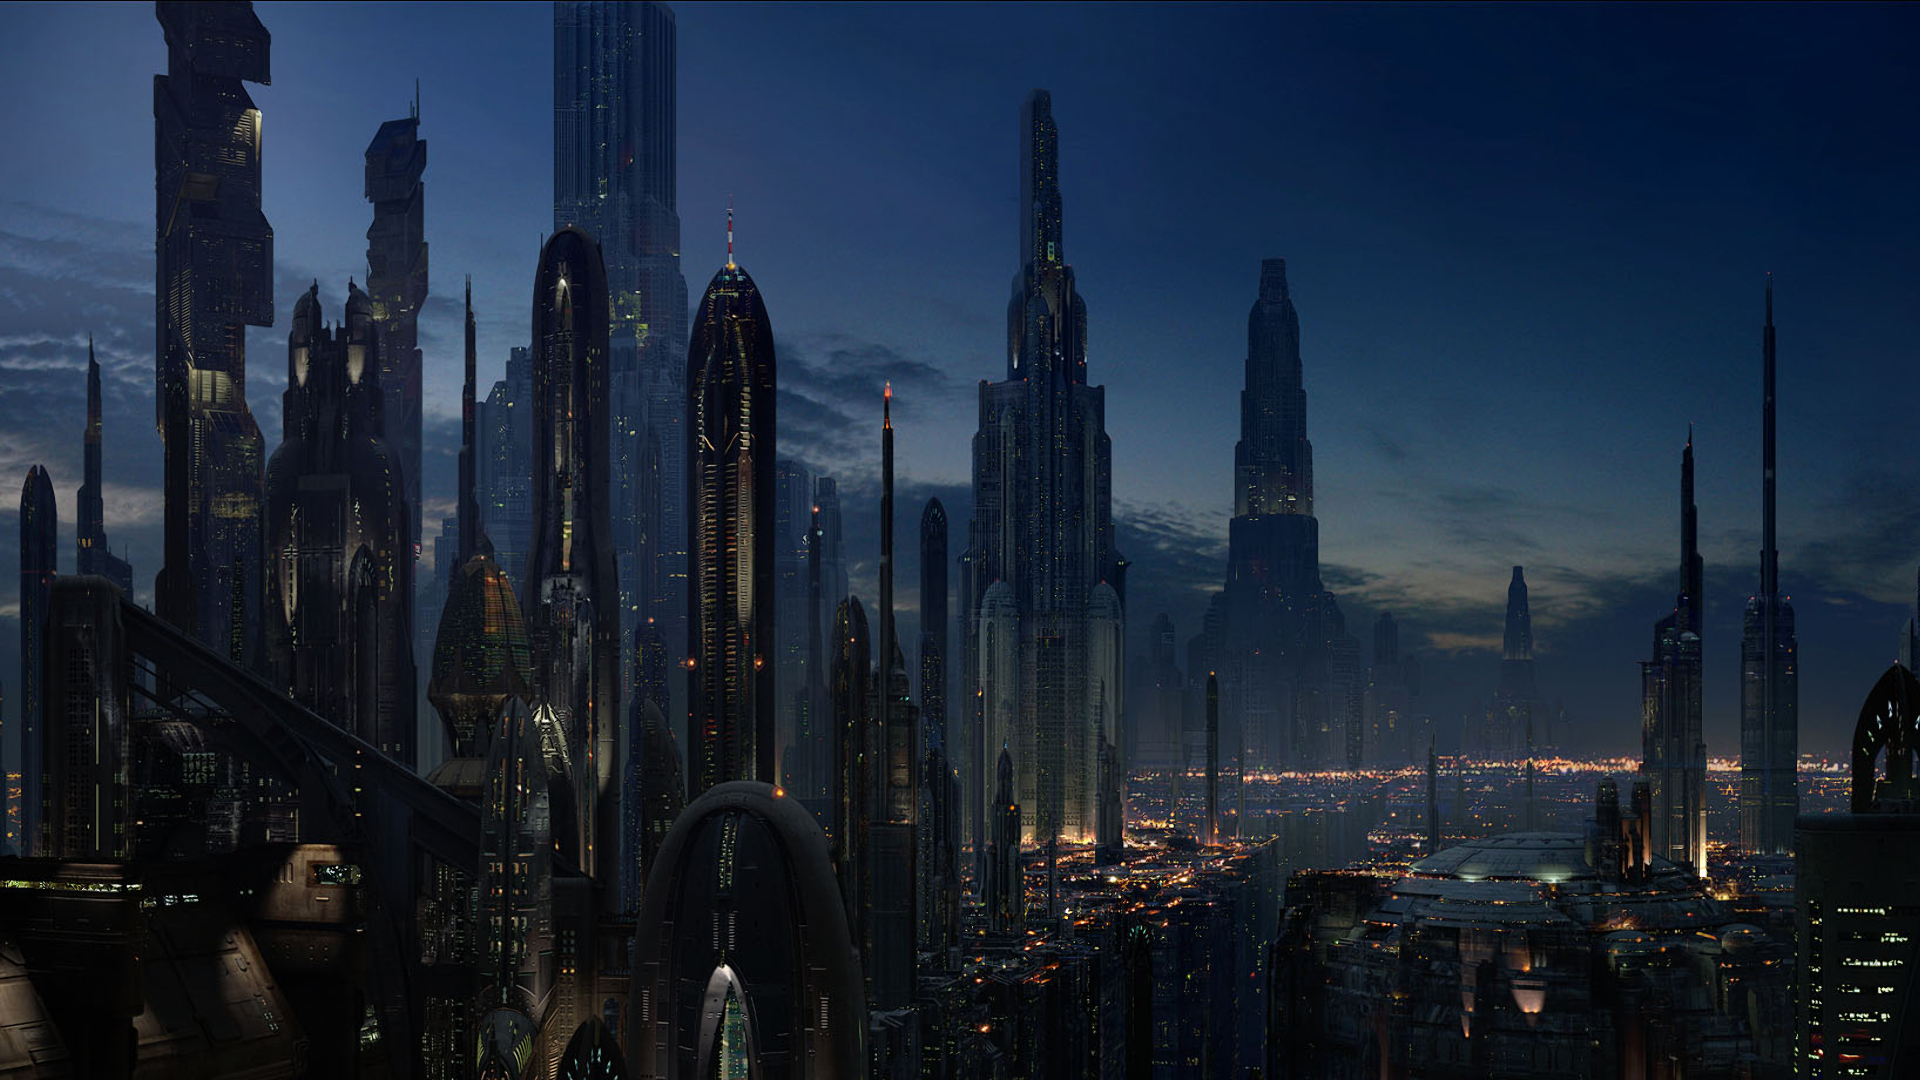 futuristic-city-wallpaper-29